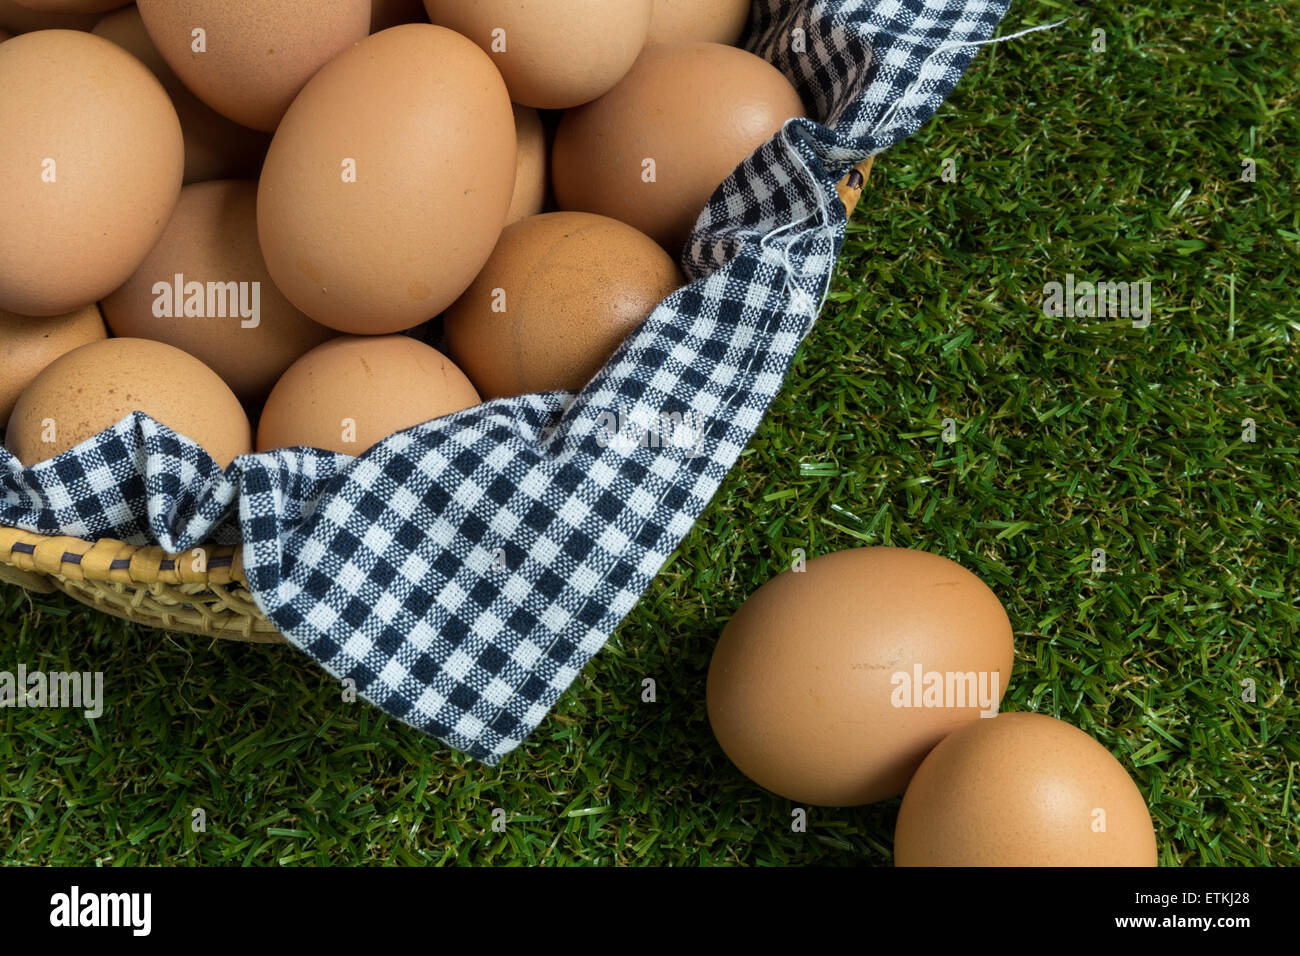 Business Concept Illustrated by Eggs. - Stock Image